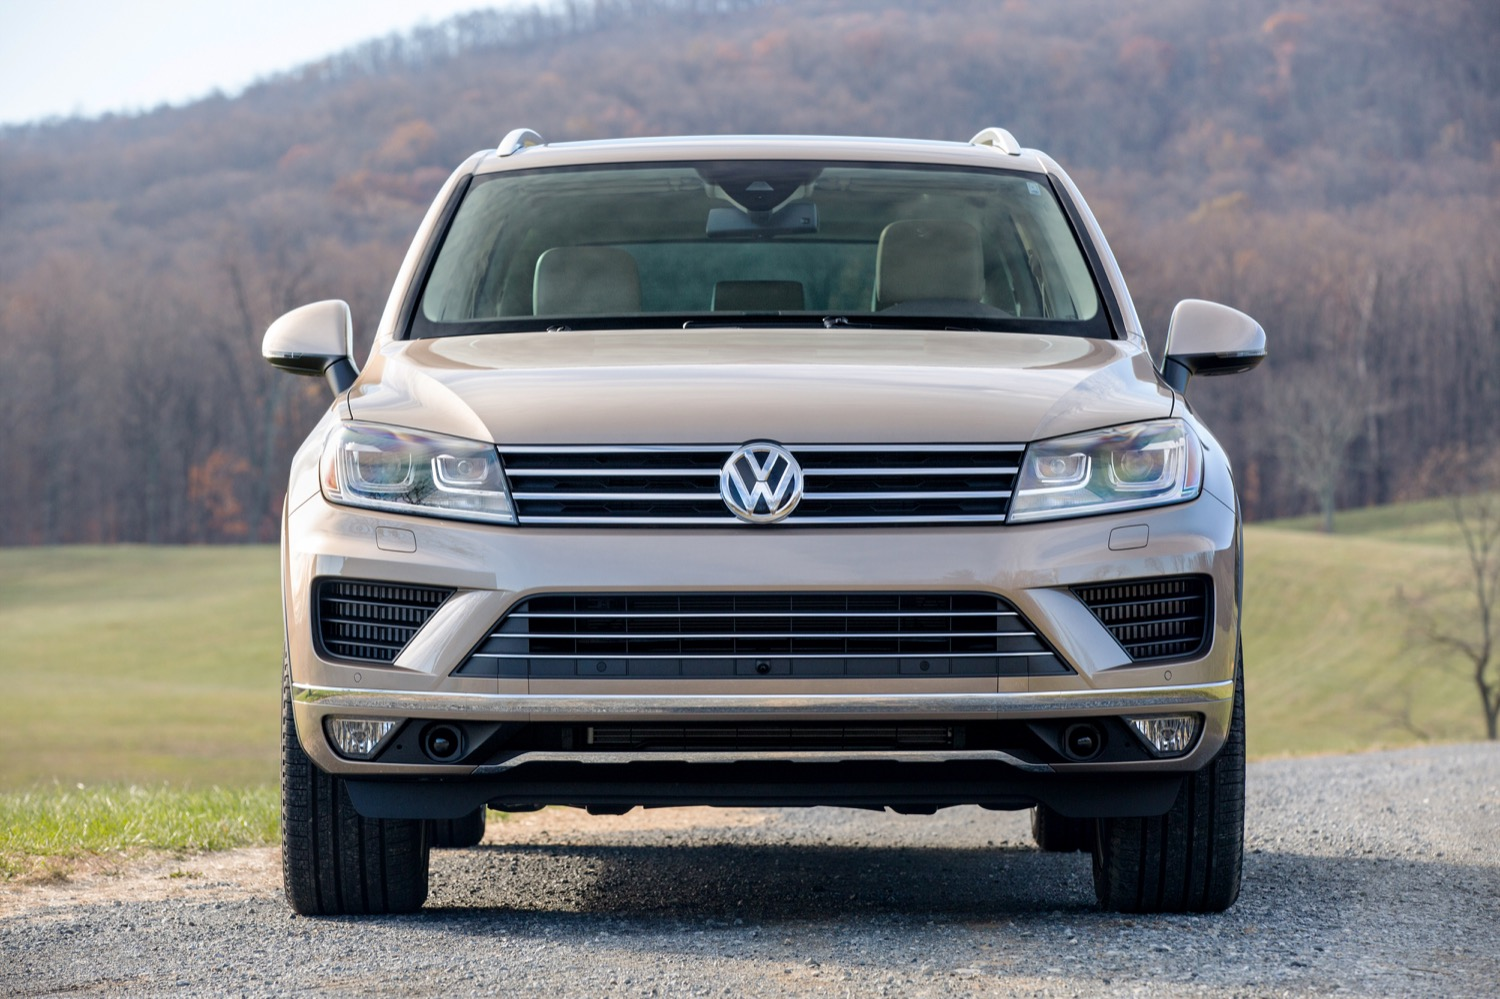 2015 volkswagen touareg motrolix. Black Bedroom Furniture Sets. Home Design Ideas